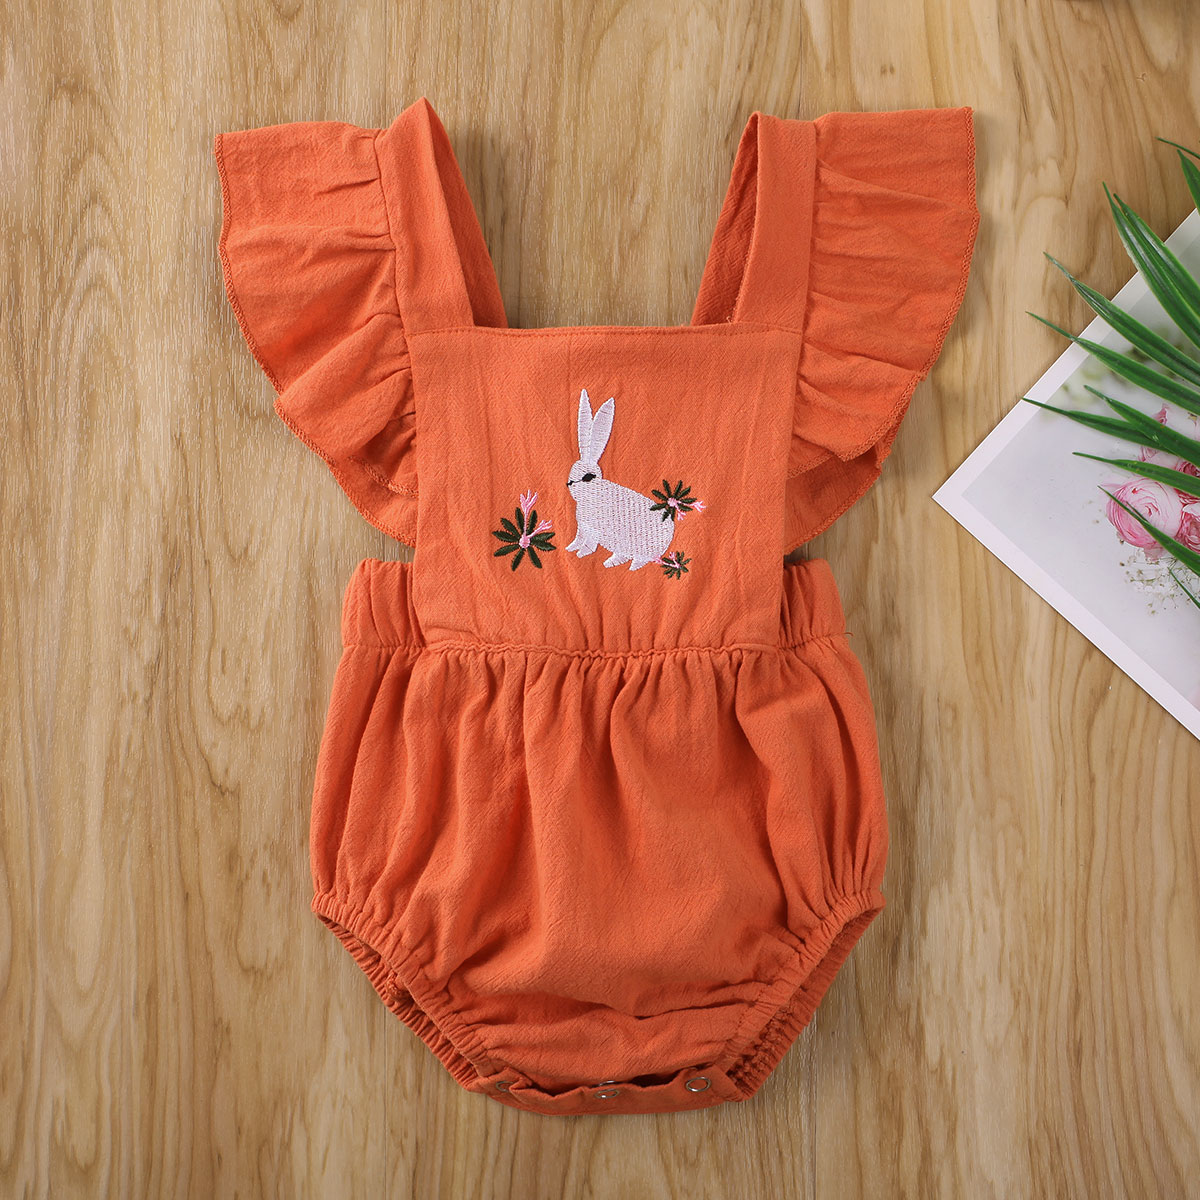 Emmababy Newborn Baby Girl Clothes Solid Color Sleeveless Rabbit Flower Embroidery Romper Jumpsuit One-Piece Outfit Sunsuit